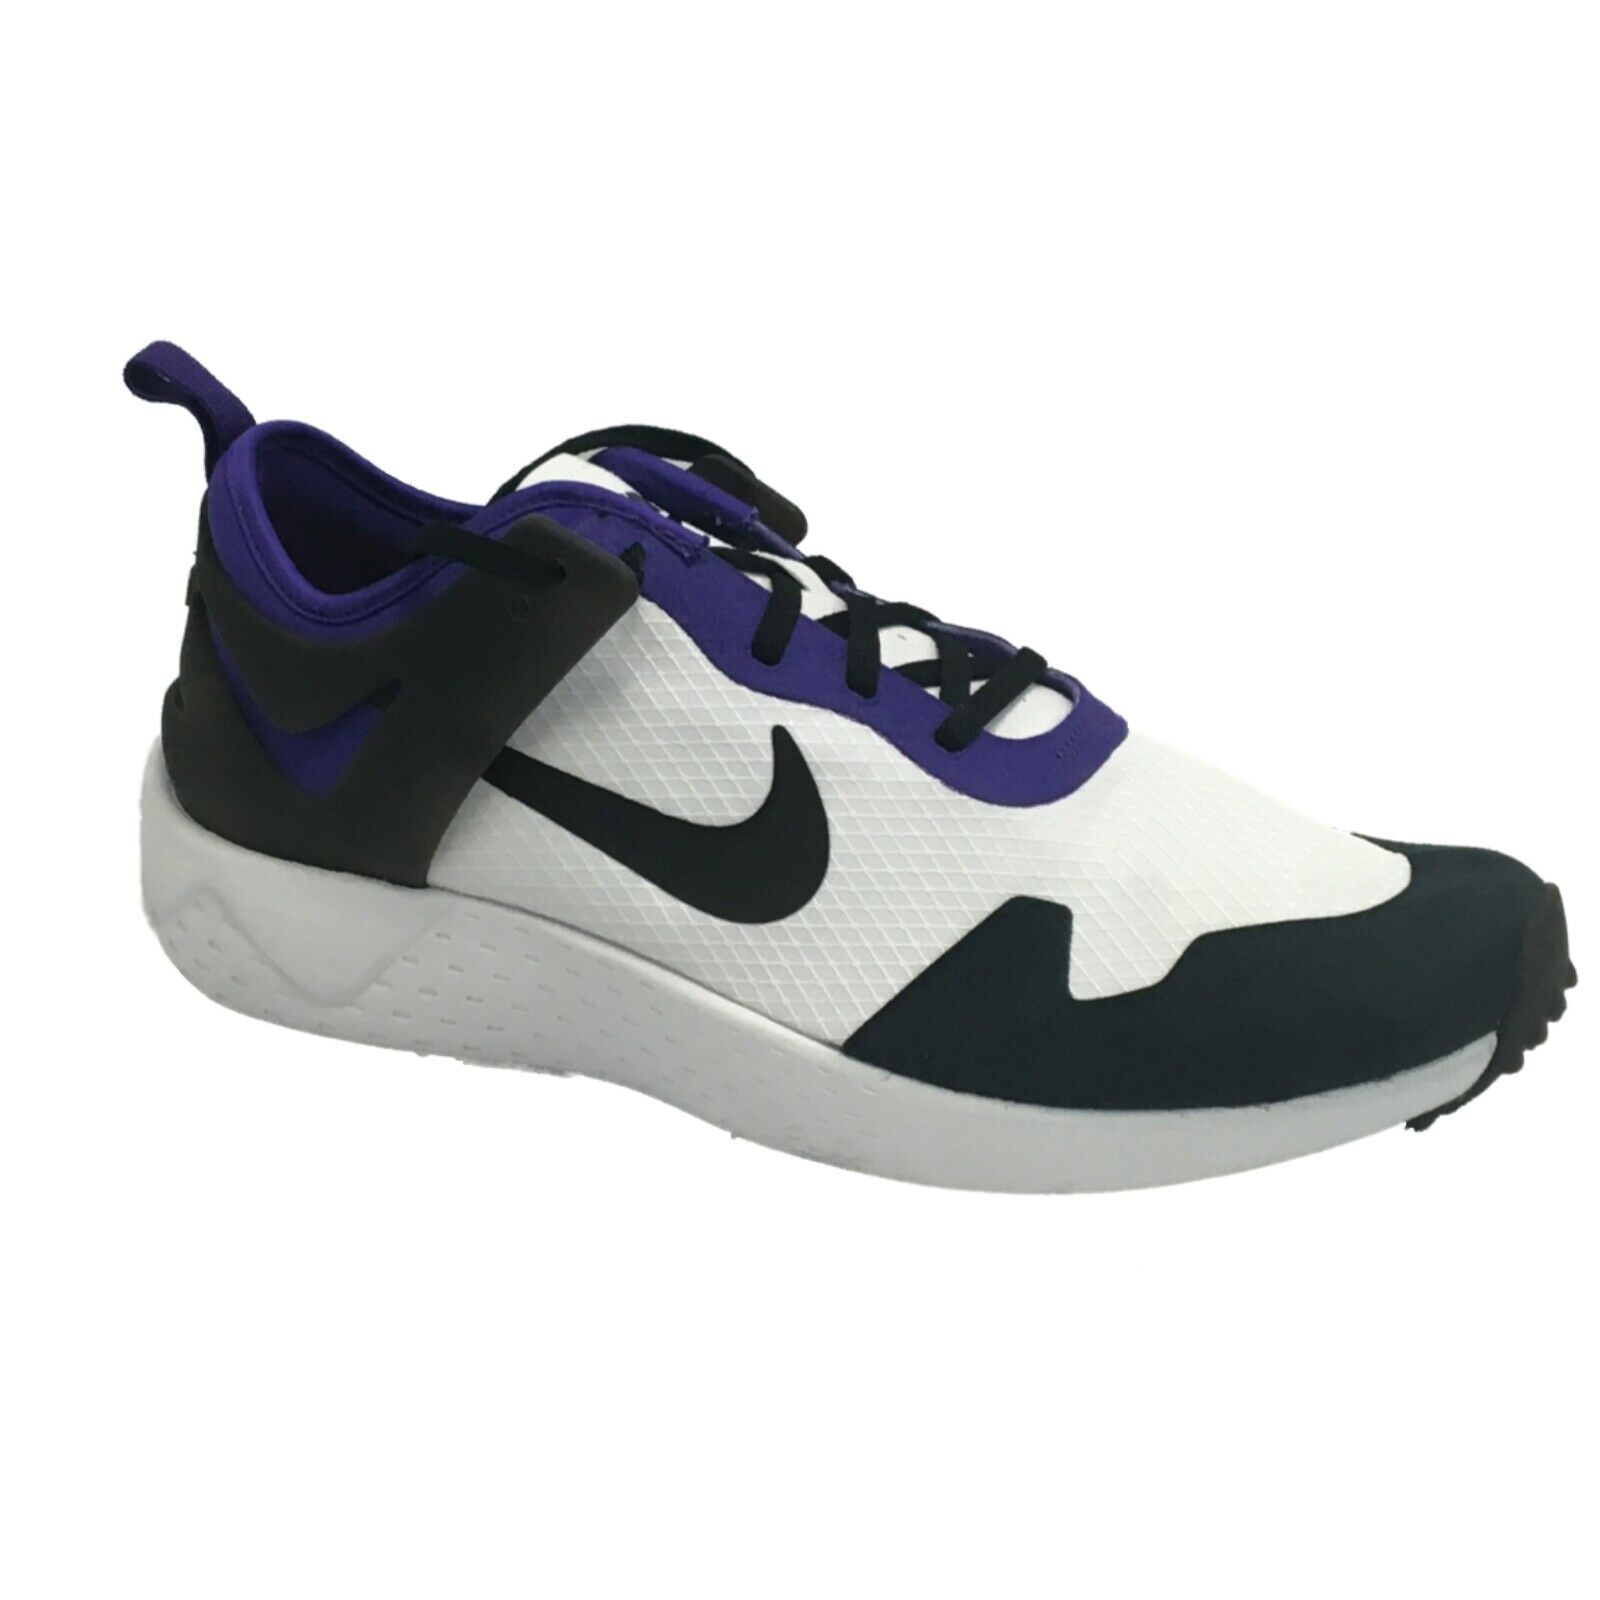 NIKE Men's Zoom Lite QS, White Black-Court Purple-Bright Citrus, 10.5 M US